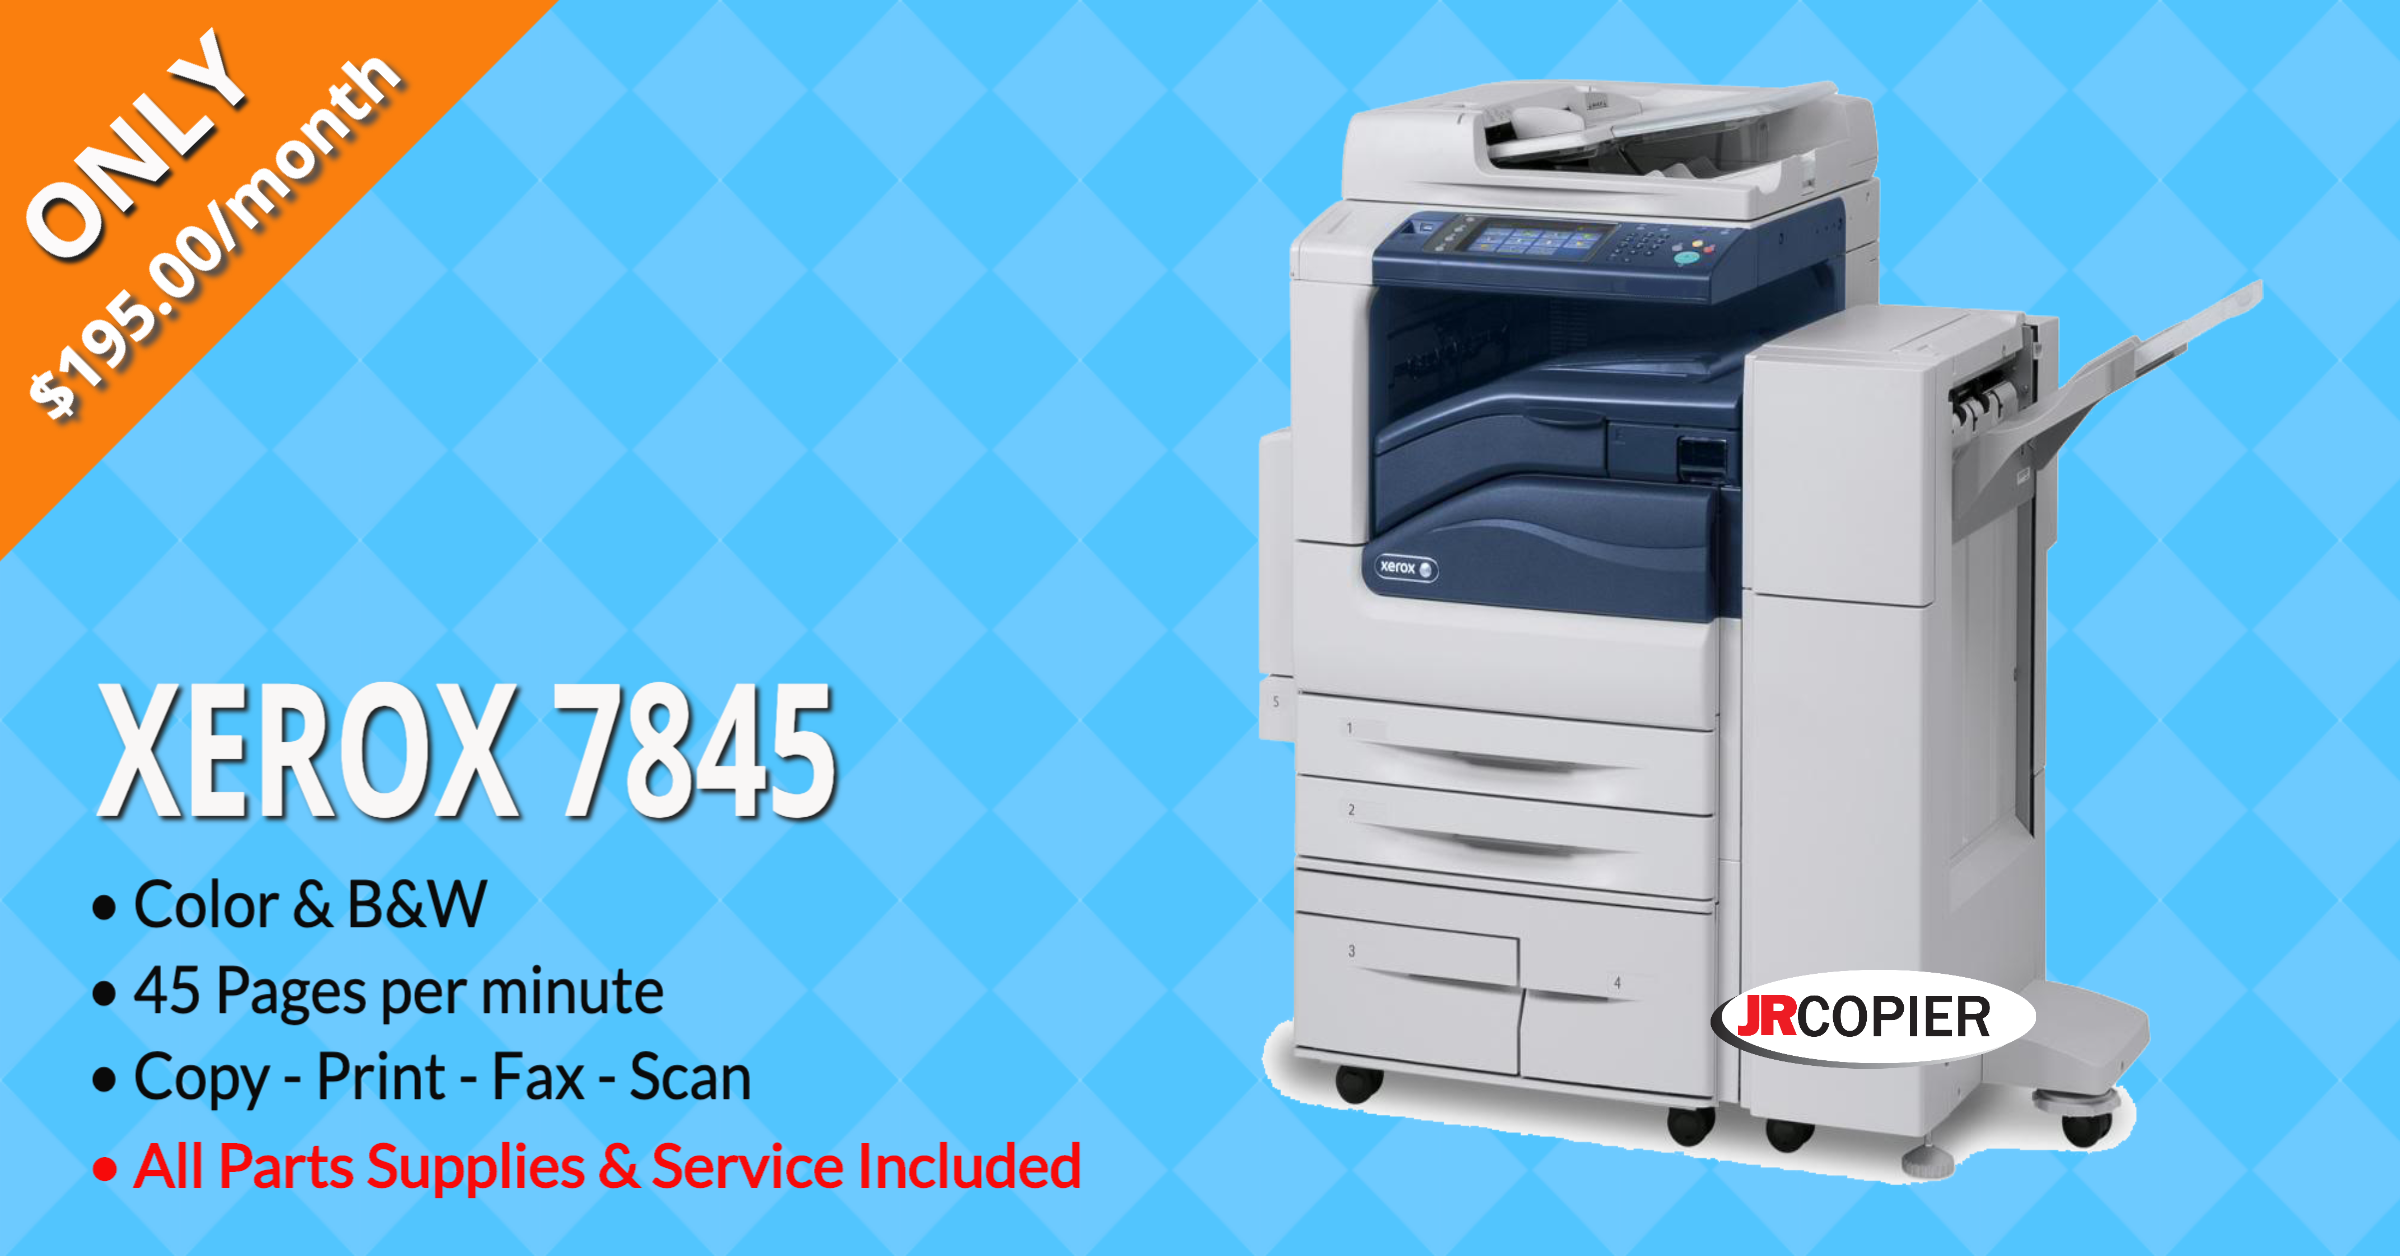 Copy Machine Leasing 34223, 34224, 34266, 34286, 34287, 34288, 34289, 34290, 34291, 34292, 34293